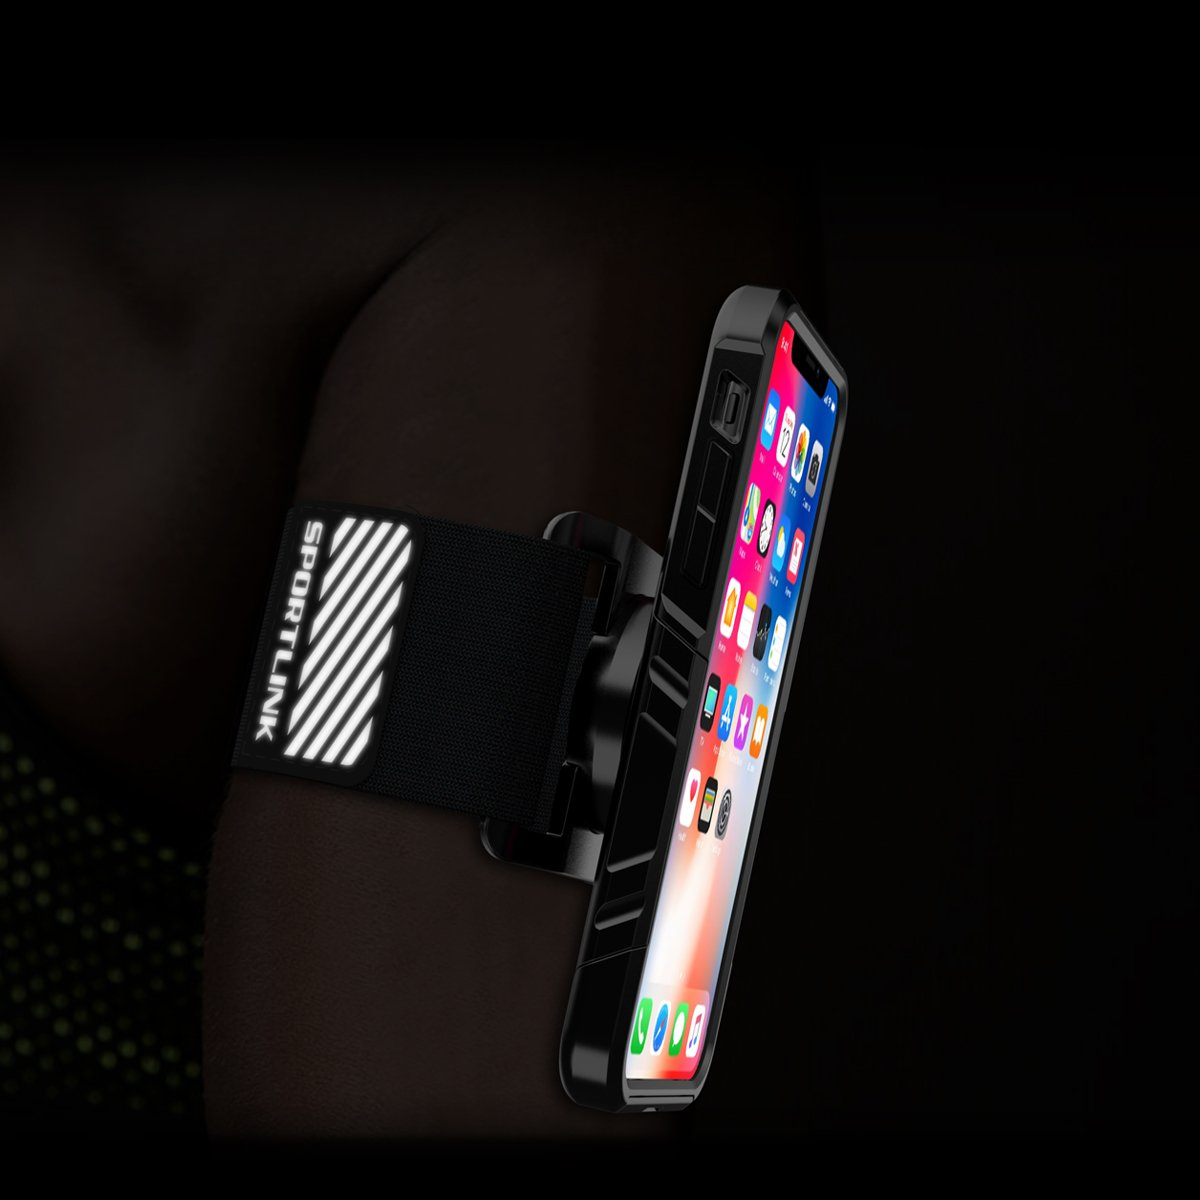 Sportlink Run Kit for iPhone X / iPhone 10, Sports Wristband Phone Holder, Workout iPhone Armband for Cycling Gym Jogging Running (Black)